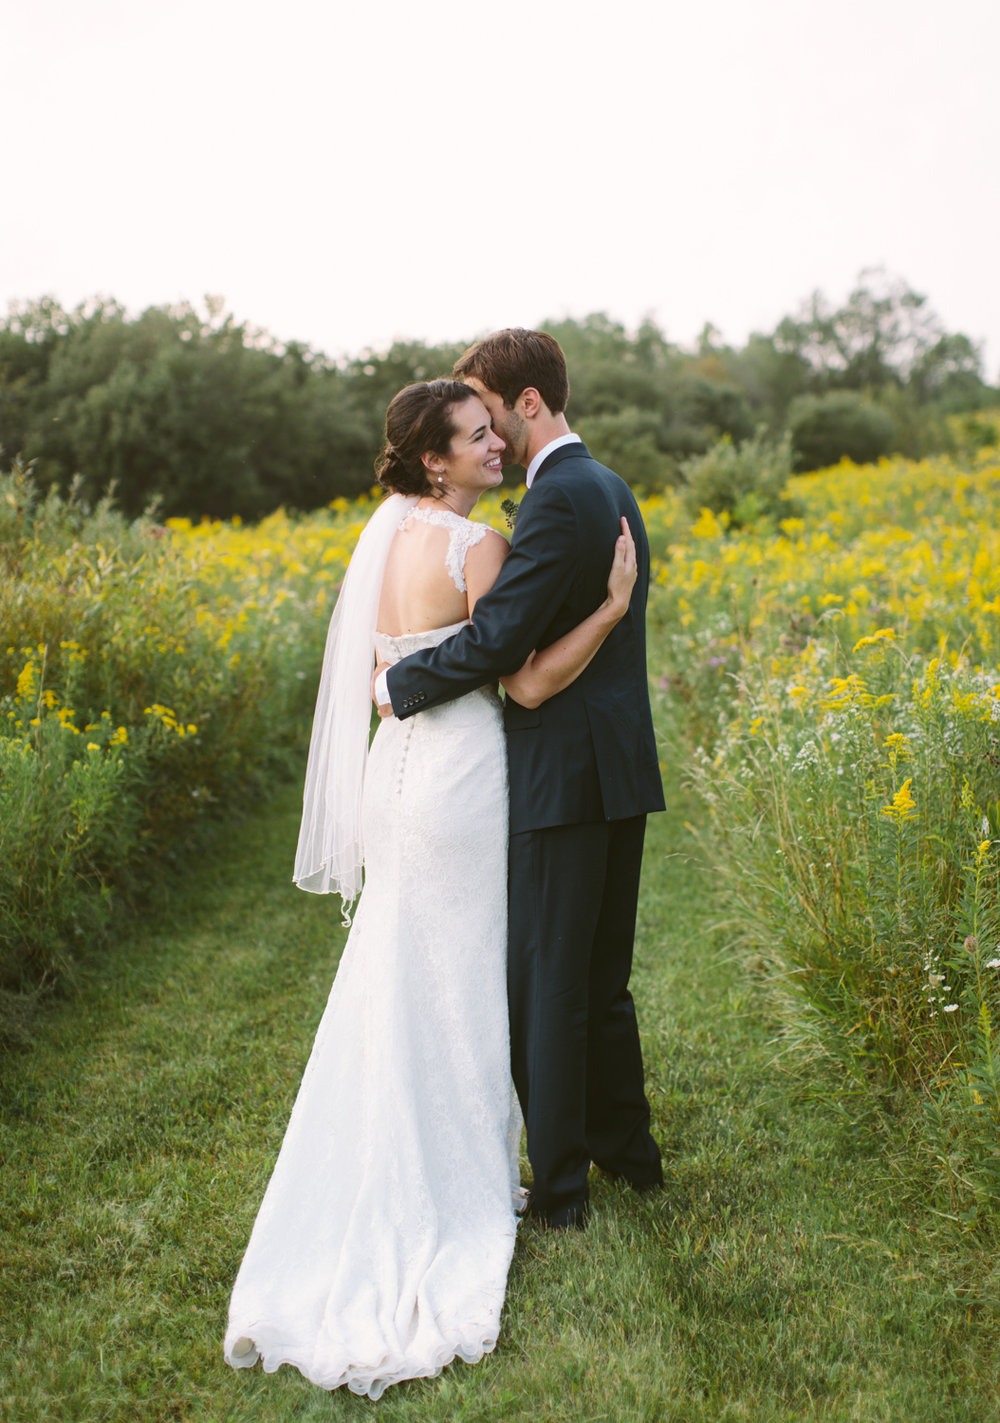 Couple embrace in a field of wild flowers